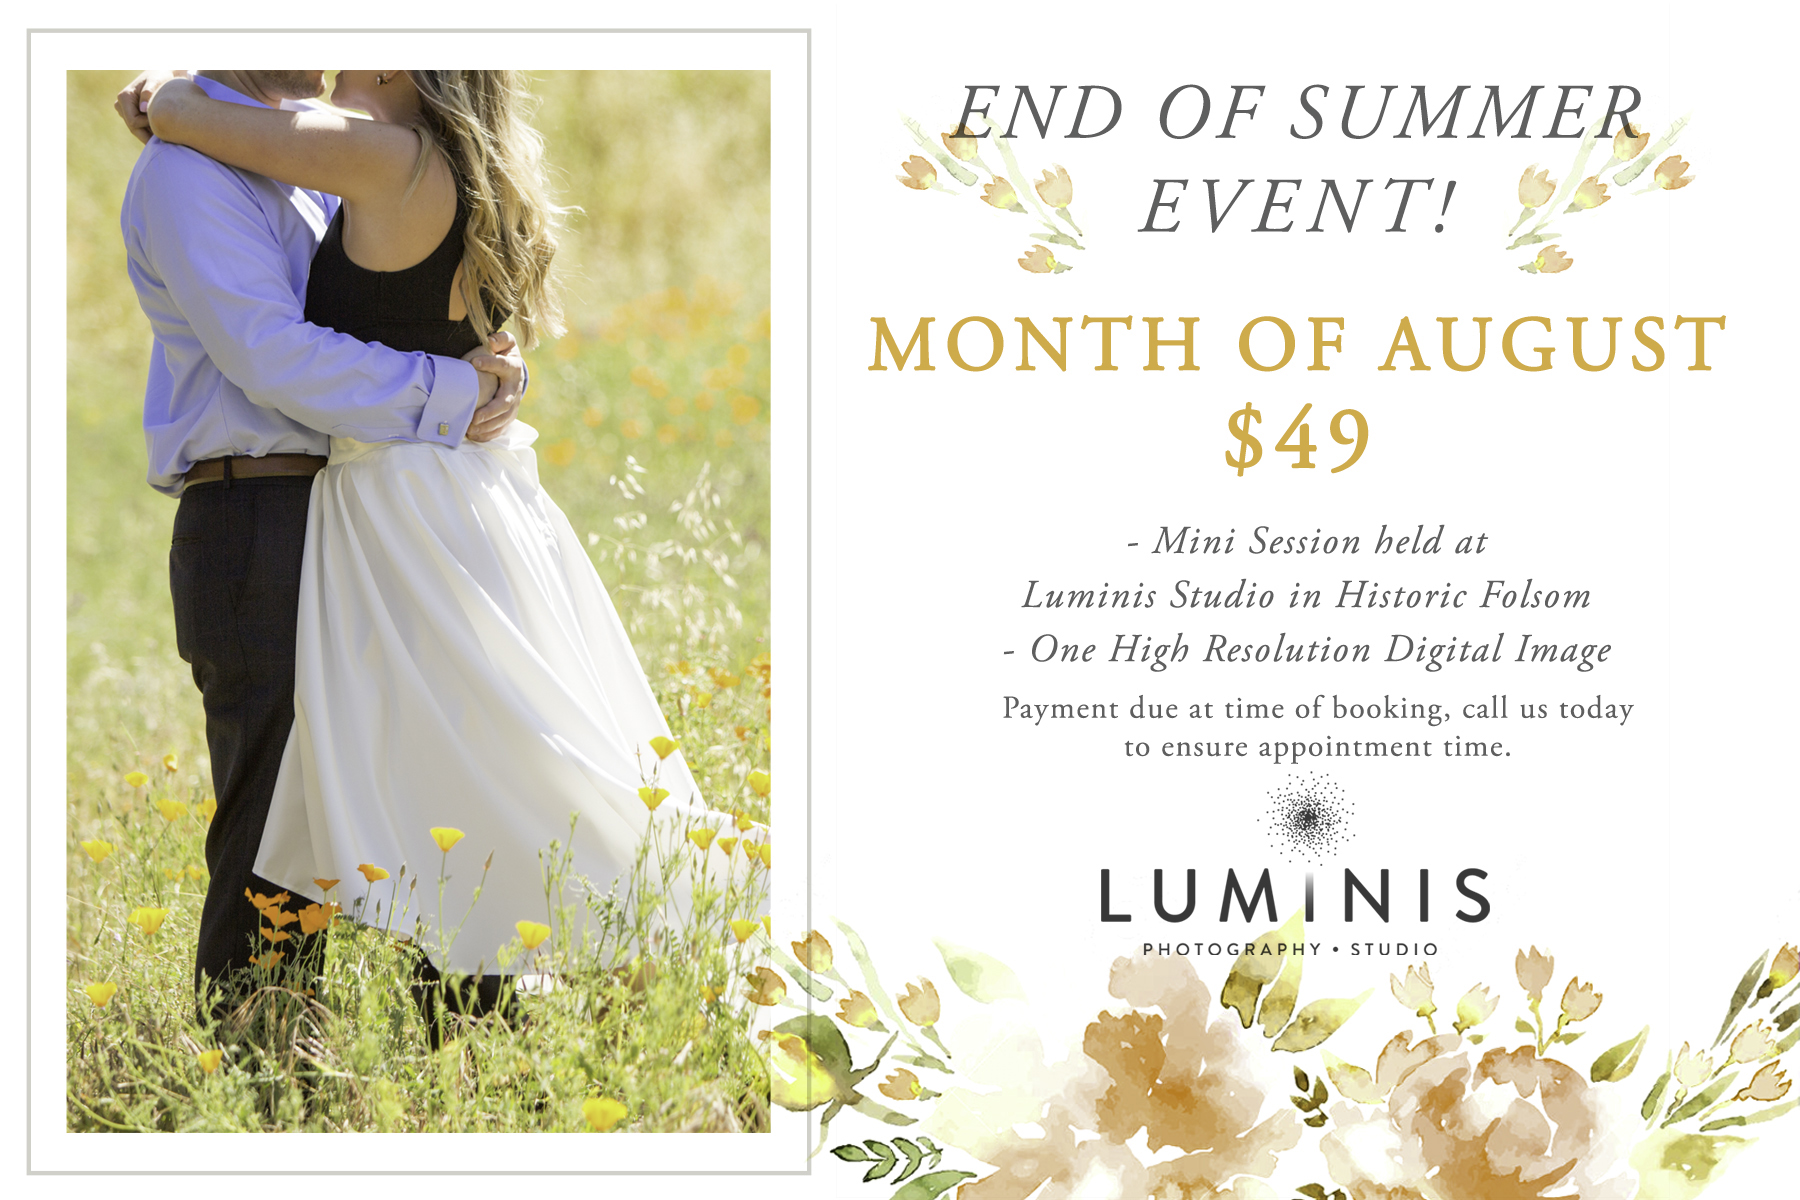 Luminis Photography Studio End of Summer Event